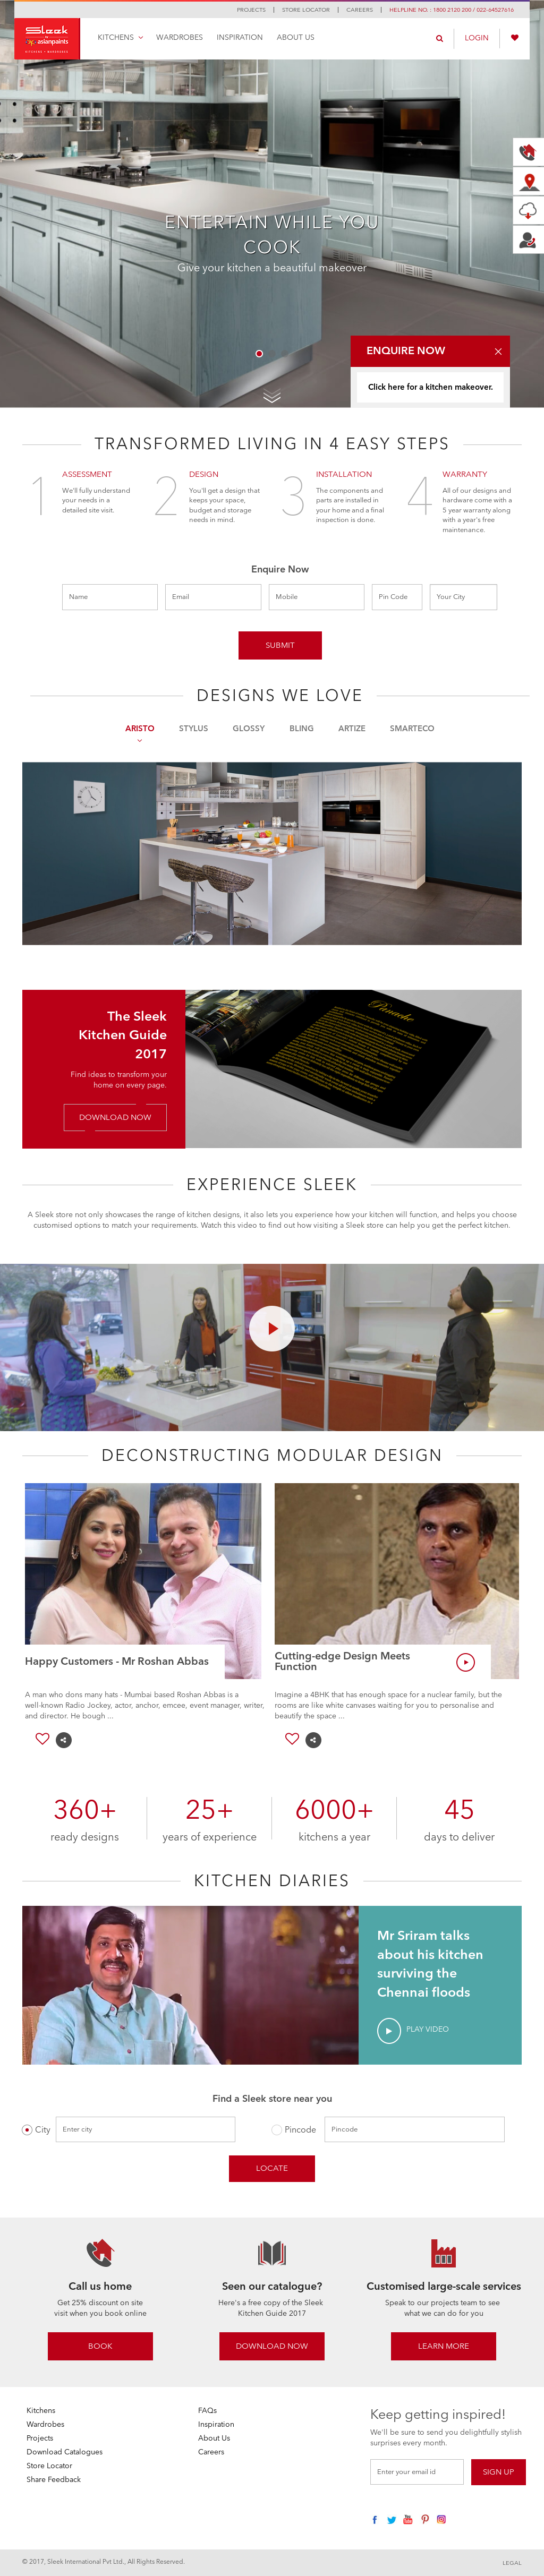 Sleek Competitors, Revenue and Employees - Owler Company Profile